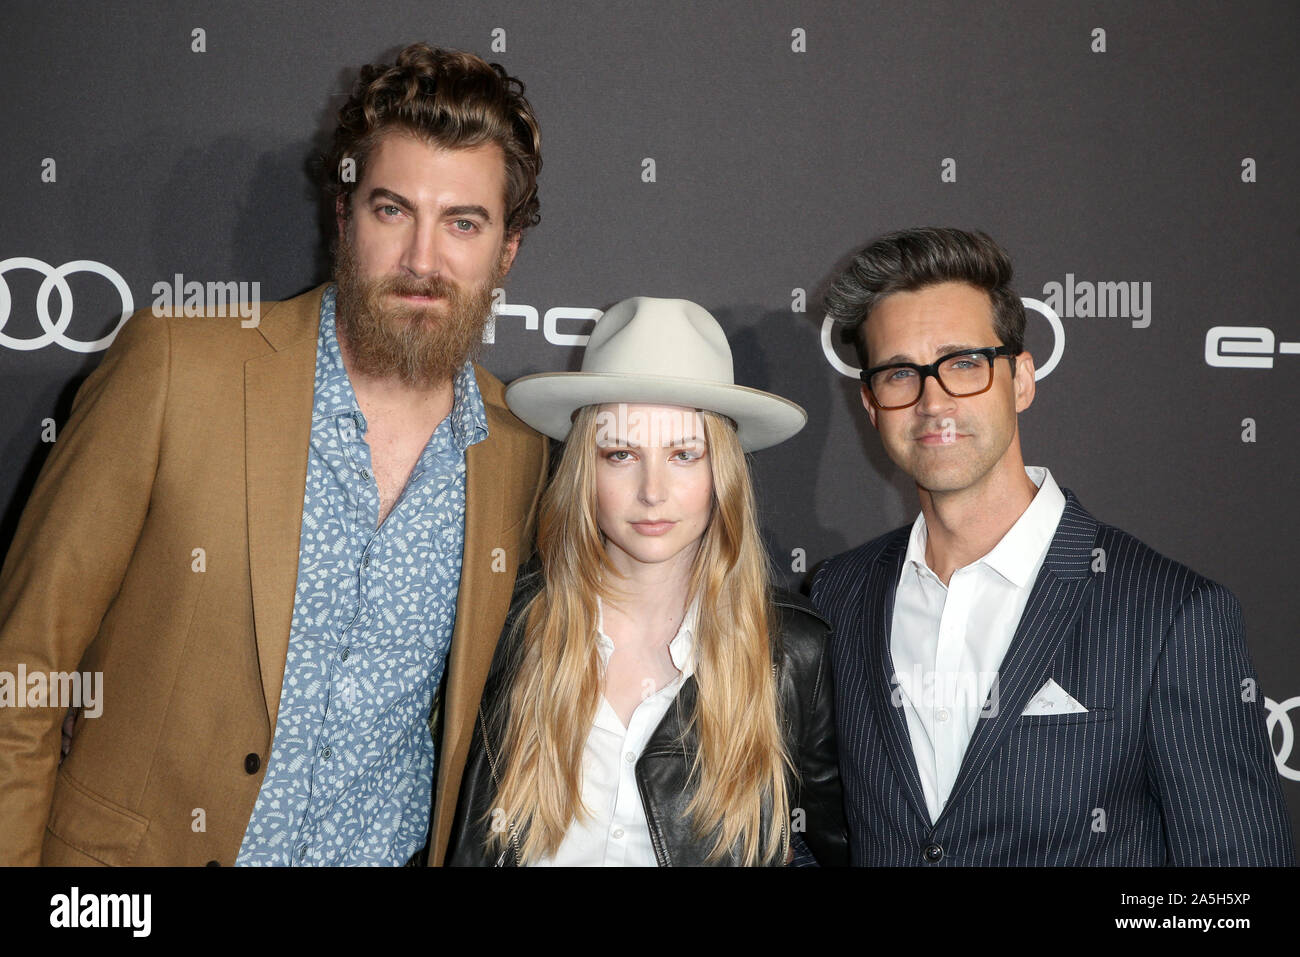 Audi Celebrates The 71st Emmys Featuring Rhett James Mclaughlin Link Neal Stevie Wynne Levine Where Los Angeles California United States When 20 Sep 2019 Credit Fayesvision Wenn Com Stock Photo Alamy Последние твиты от stevie wynne levine (@steviewlevine). https www alamy com audi celebrates the 71st emmys featuring rhett james mclaughlin link neal stevie wynne levine where los angeles california united states when 20 sep 2019 credit fayesvisionwenncom image330448126 html